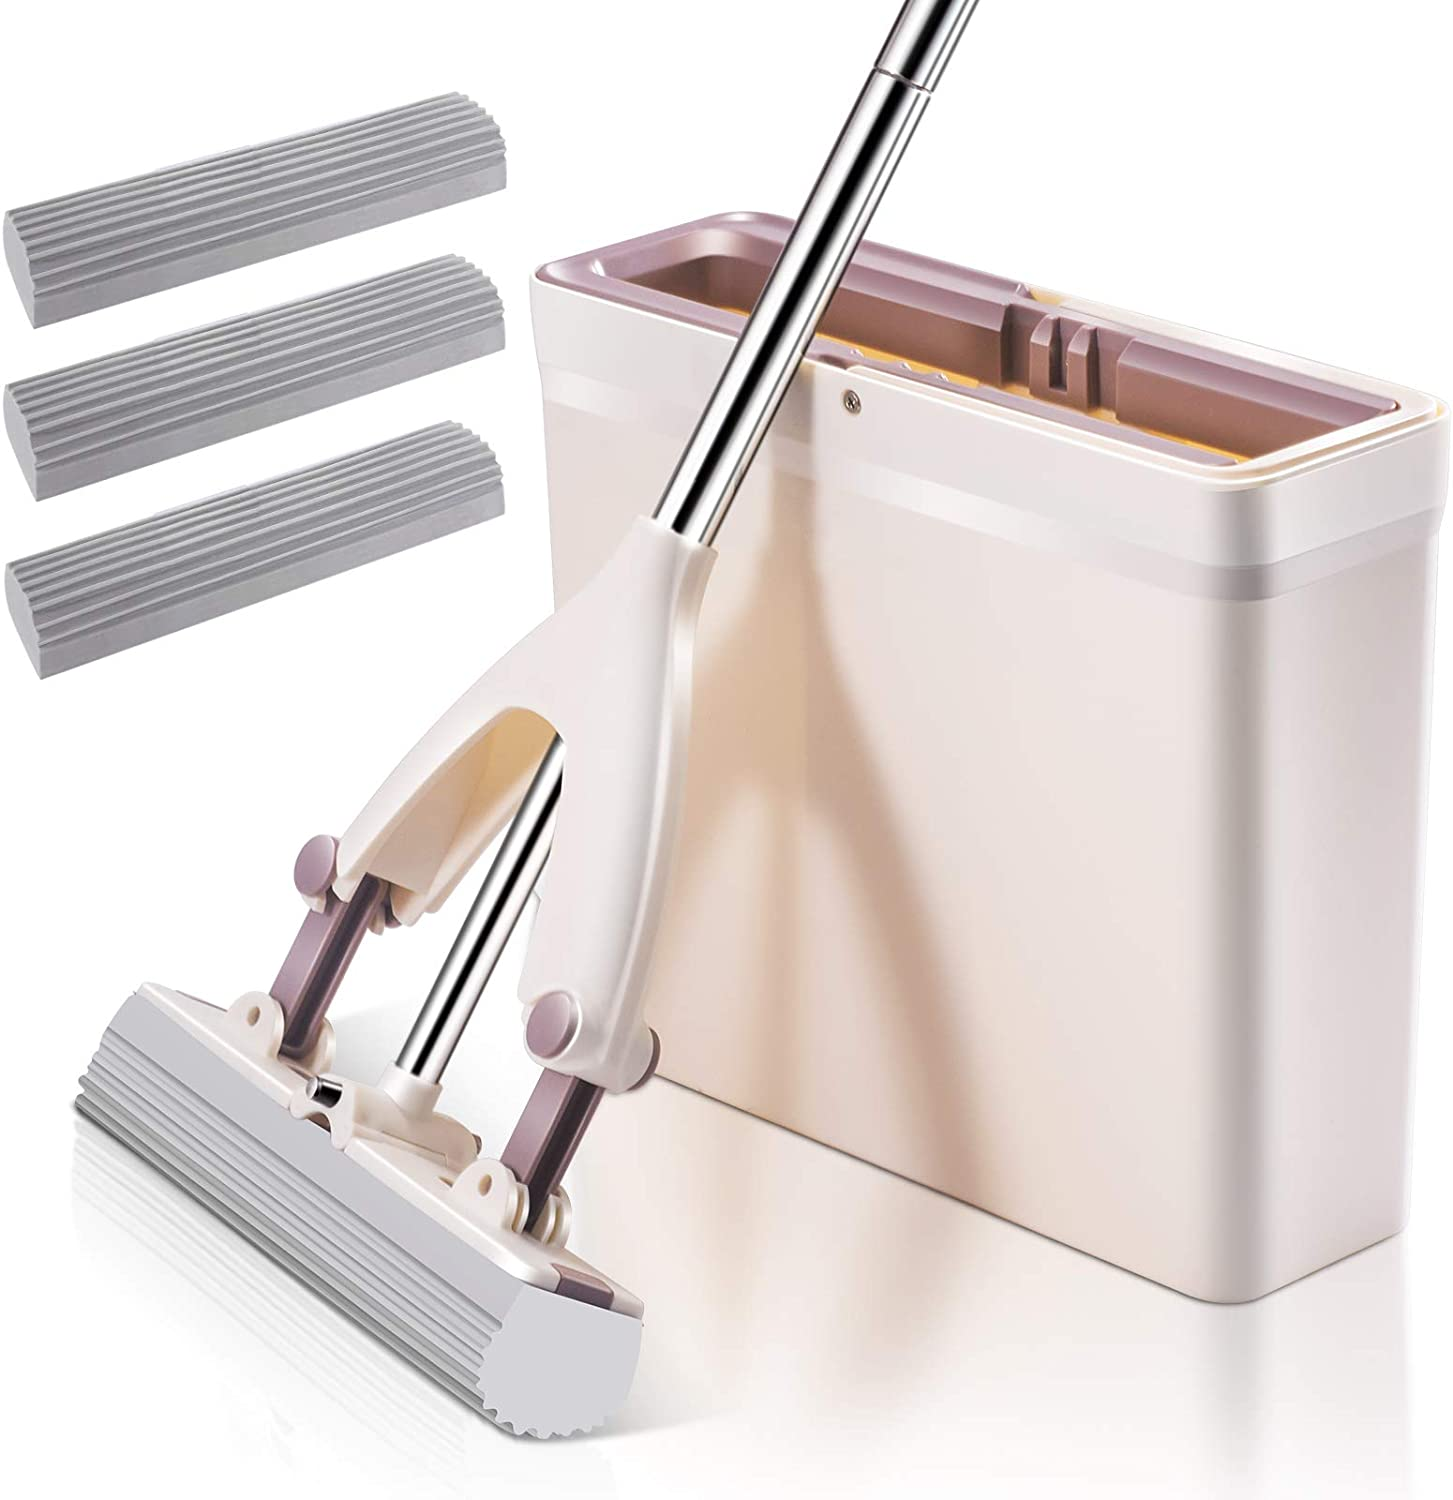 Sponge Mop and Bucket Set with 3 Pcs Super Absorbent PVA Sponge Mop Heads Self Cleaning Lazy Floor Mop Bucket with Washing Drying and Storage for Kitchen and Floor Cleaning